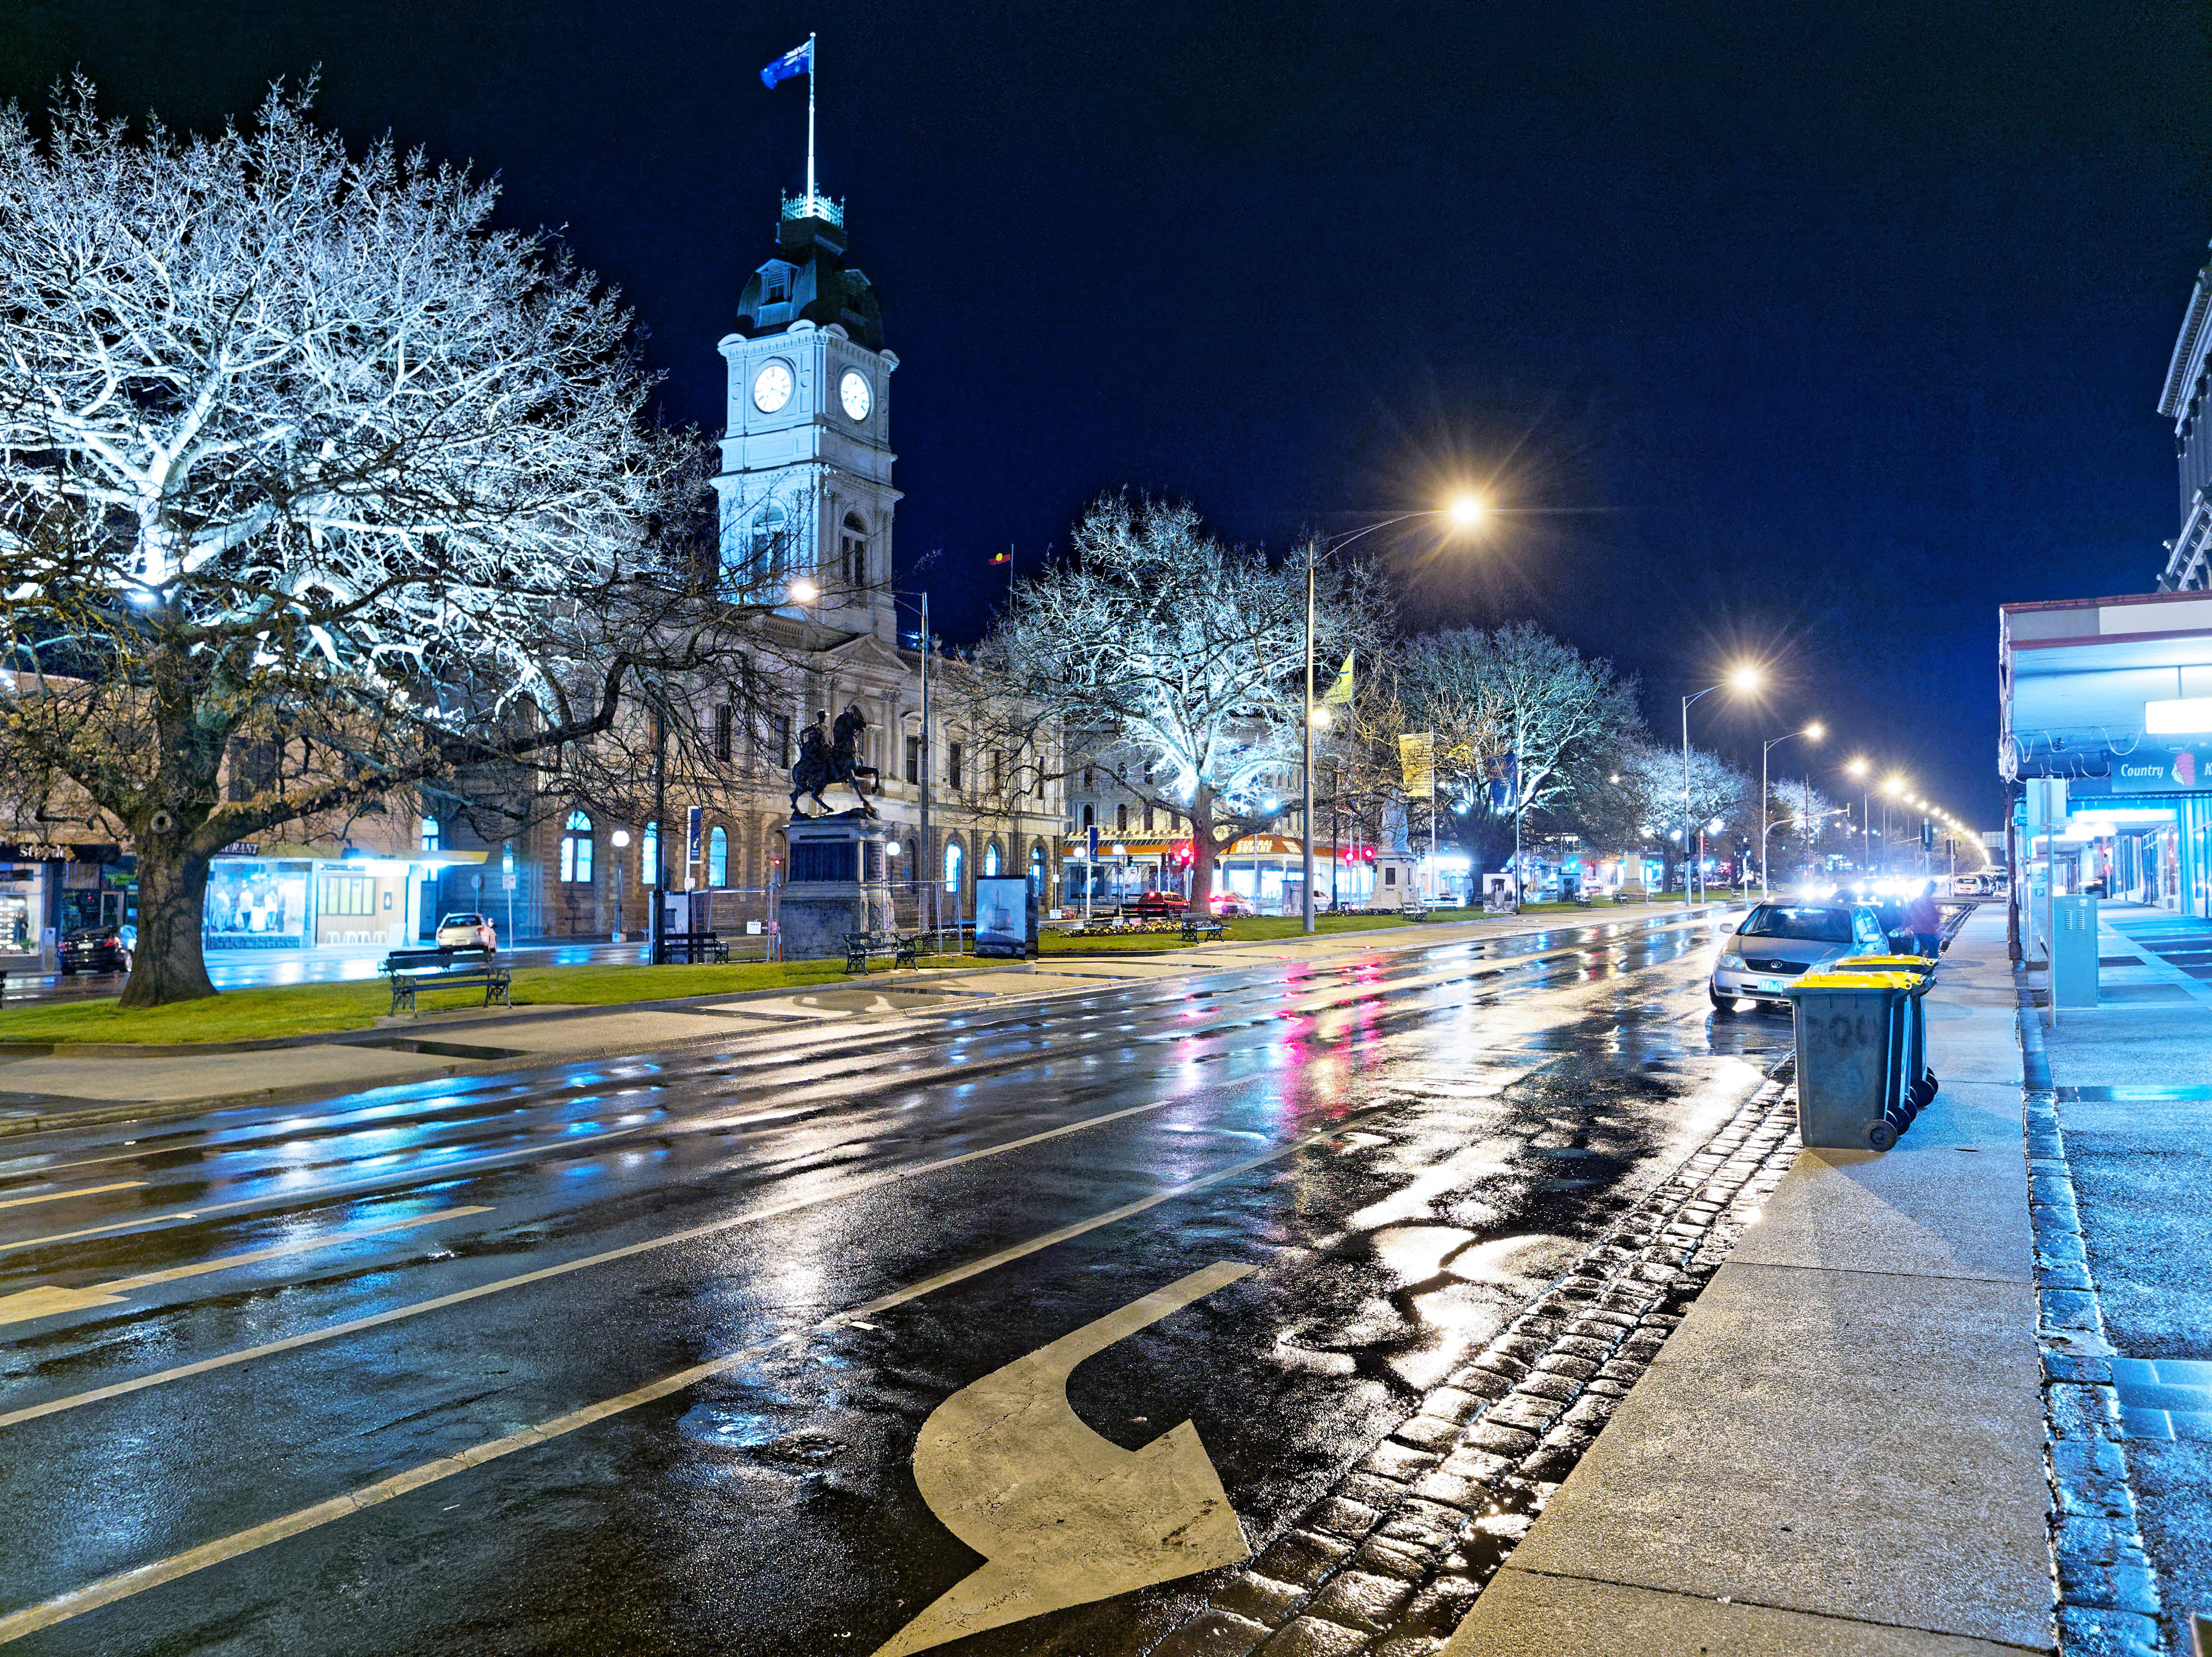 Ballarat-by-night-14.jpeg